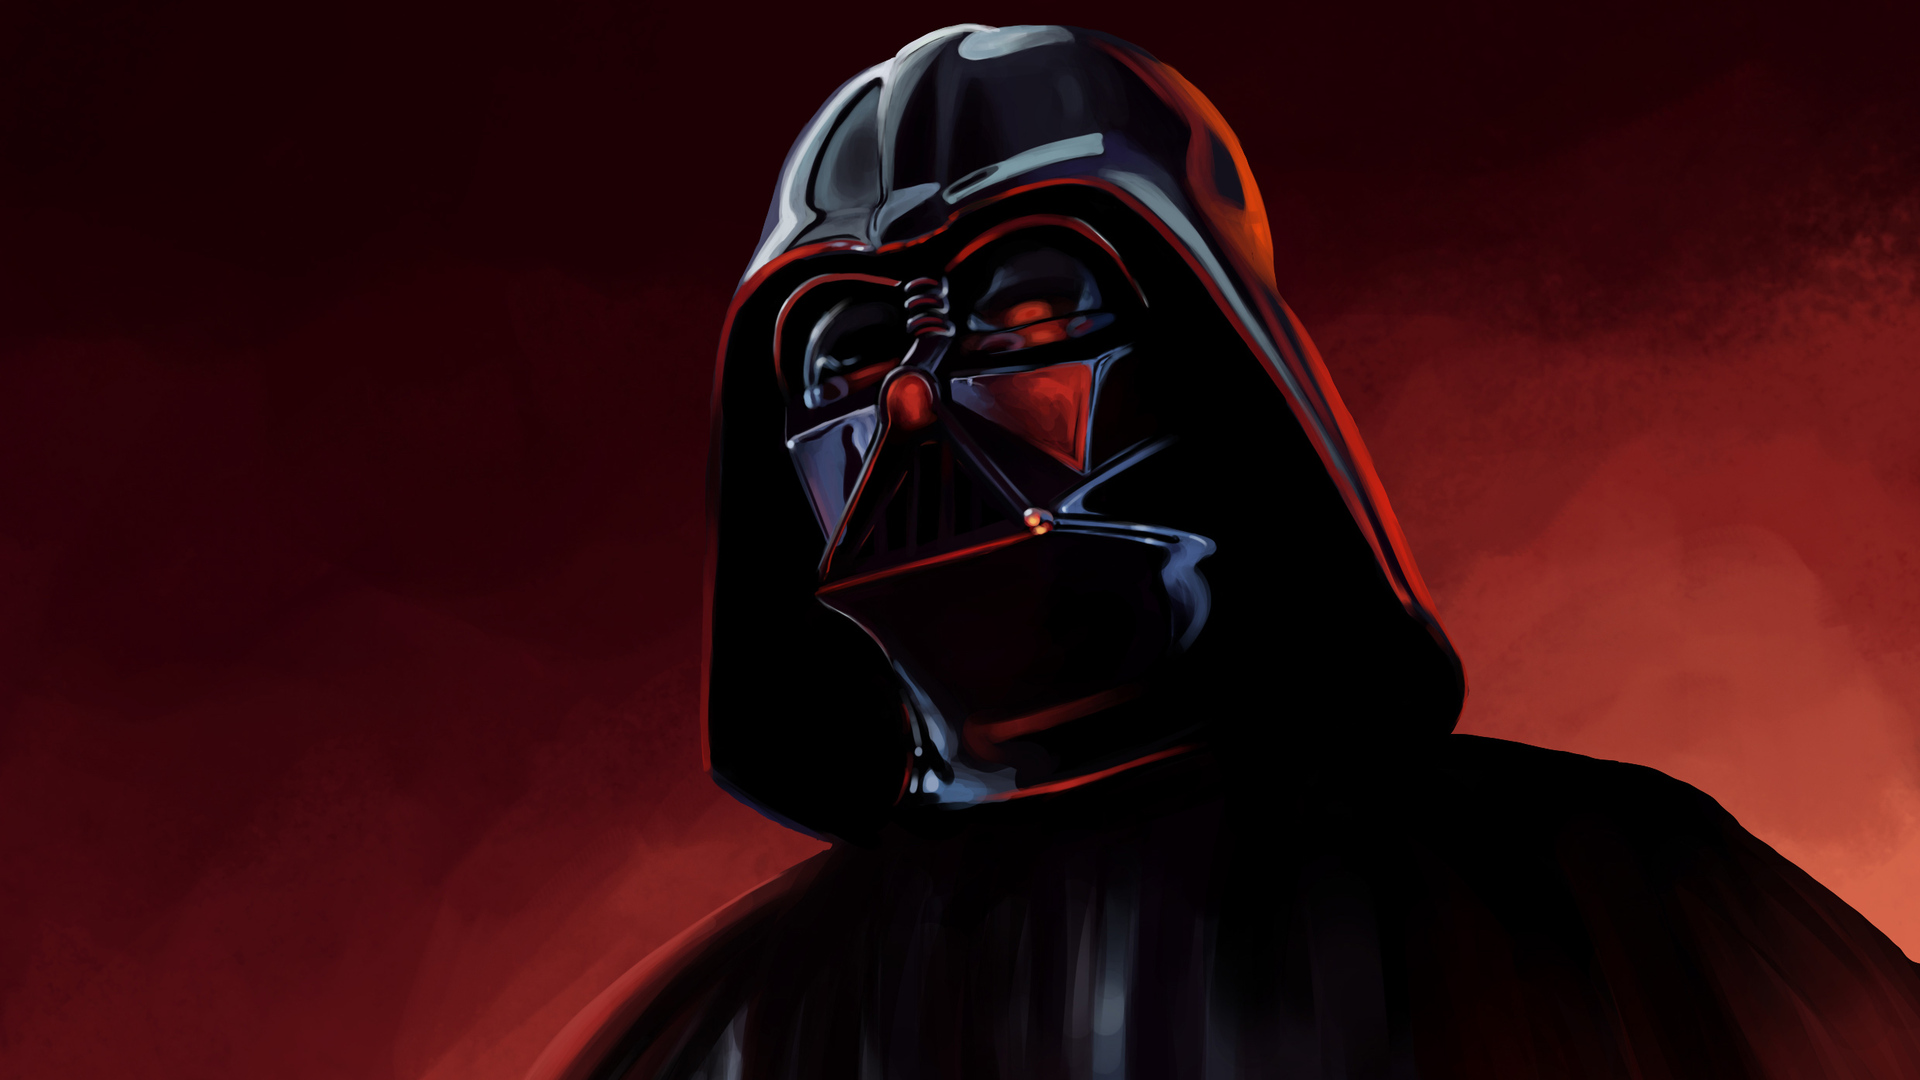 1920x1080 Darth Vader Arts Laptop Full Hd 1080p Hd 4k Wallpapers Images Backgrounds Photos And Pictures